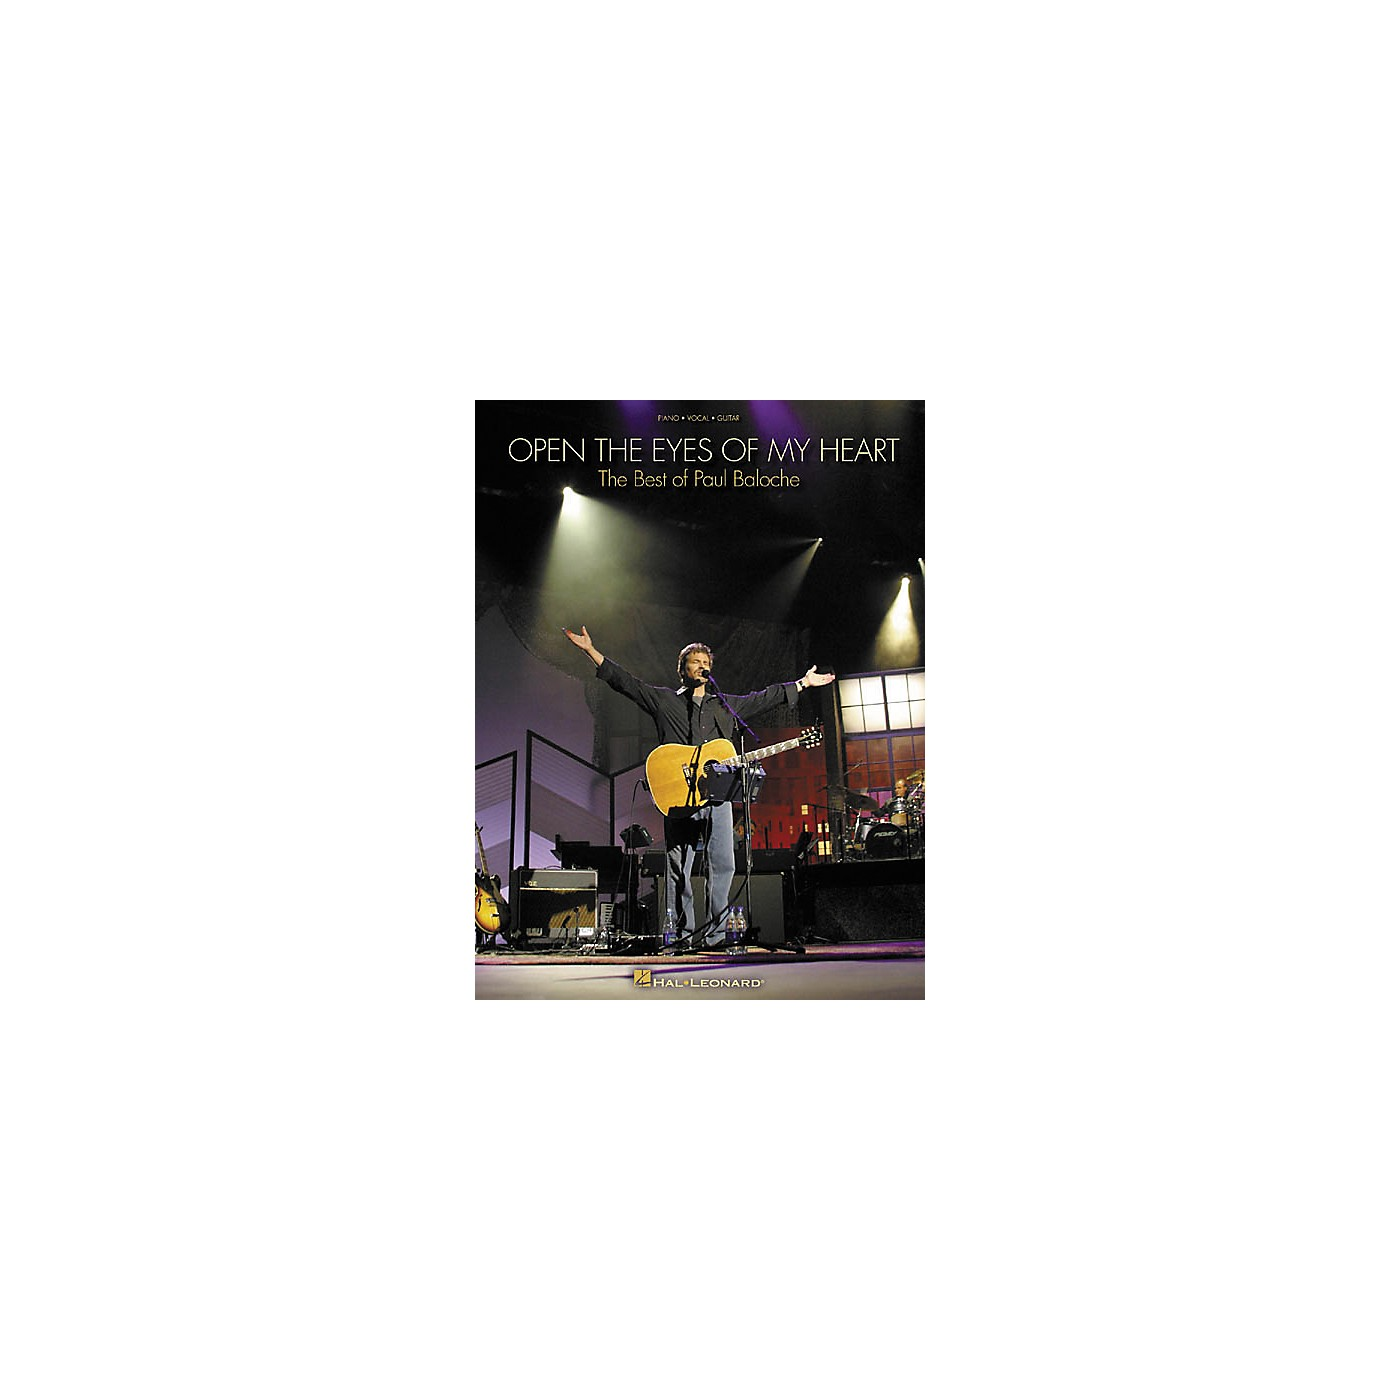 Hal Leonard Paul Baloche Open the Eyes of My Heart Piano, Vocal, Guitar Songbook thumbnail